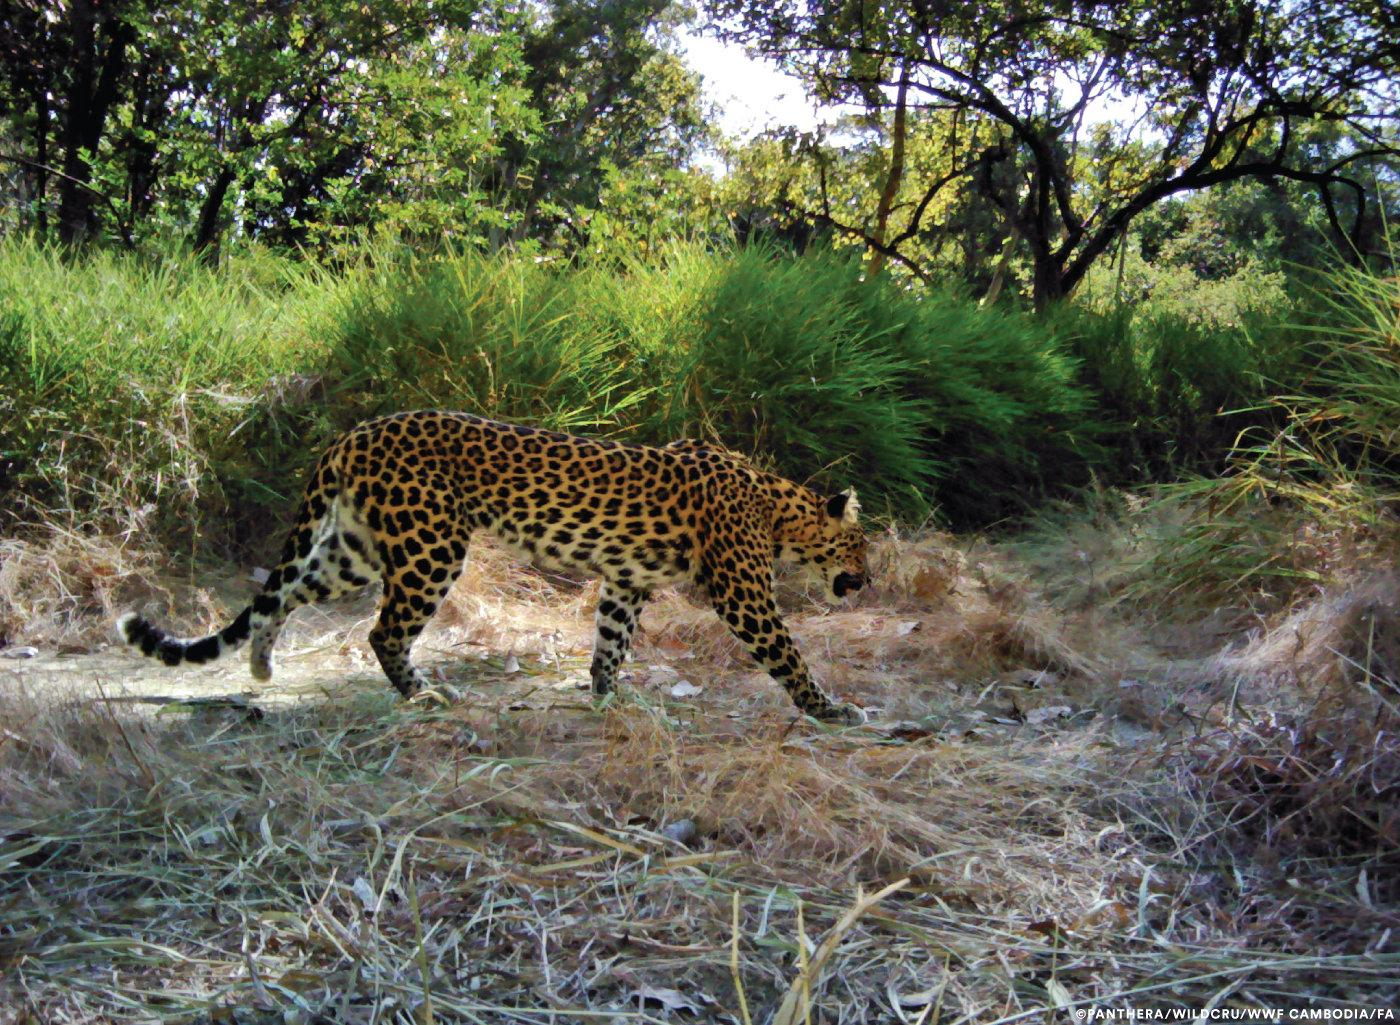 Leopards in Cambodia 'on brink of extinction due to poaching', research suggests